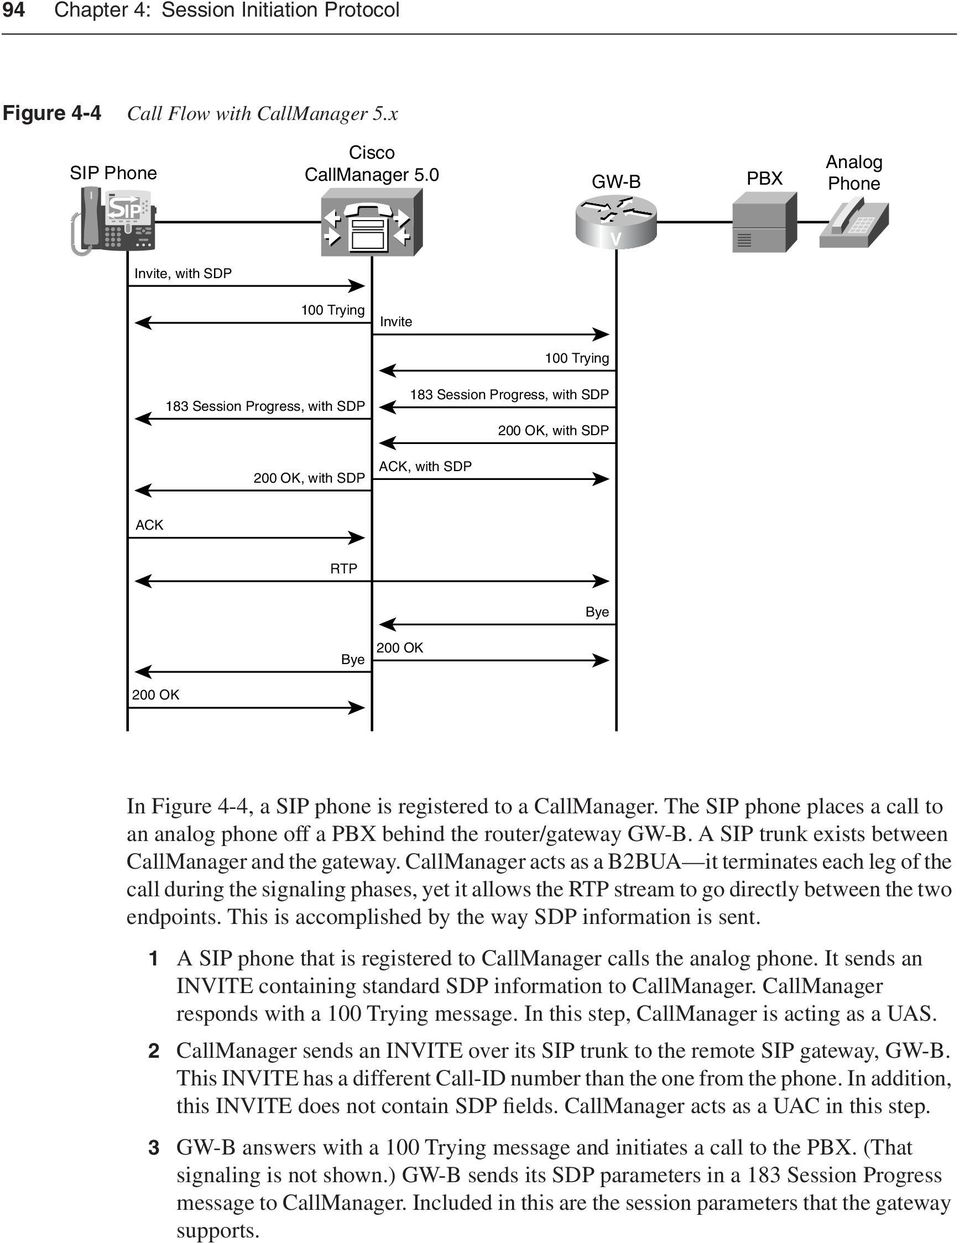 200 OK 200 OK In Figure 4-4, a SIP phone is registered to a CallManager. The SIP phone places a call to an analog phone off a PBX behind the router/gateway GW-B.